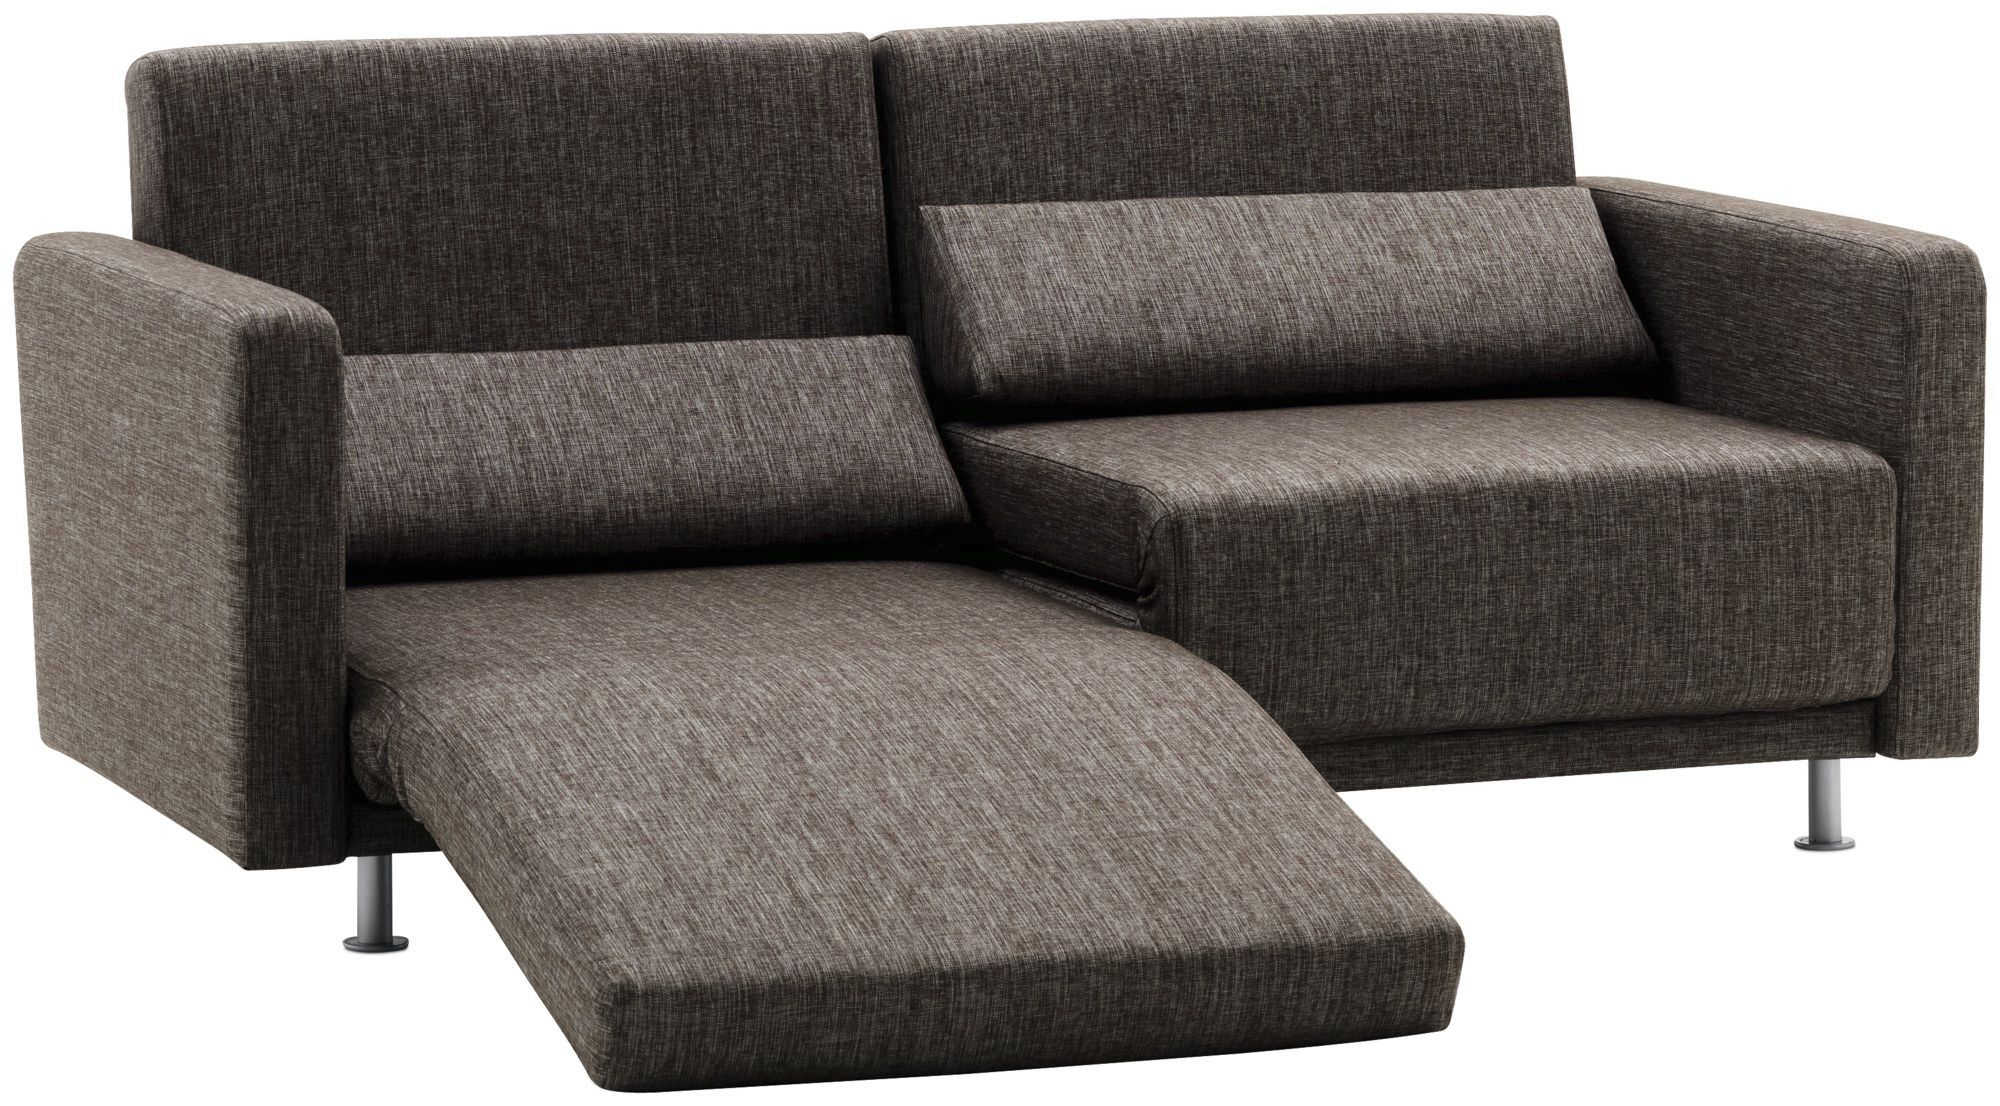 sofa bed contemporary fabric 25 seater - Boconcept Canape Convertible